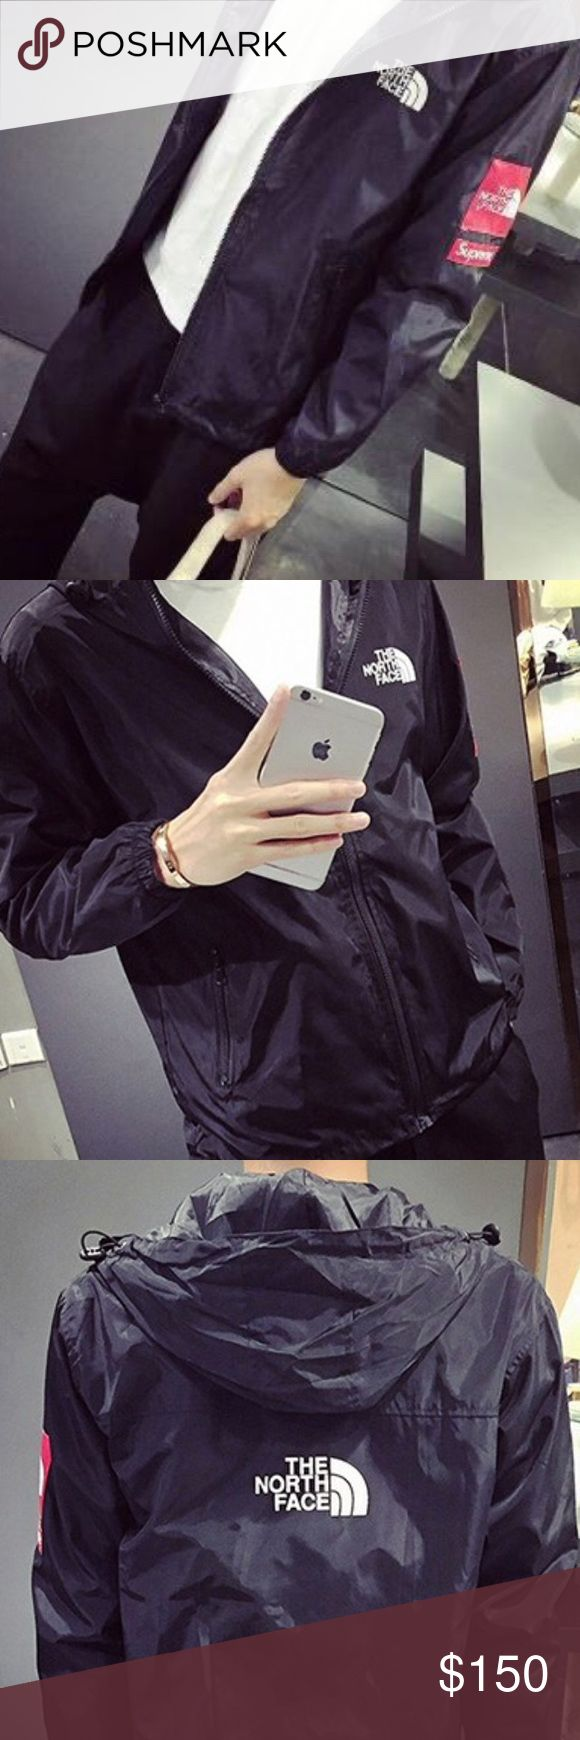 The North Face Supreme Windbreaker ONLY AVAILABLE IN BLACK~~Size M~~PRICE IS FIRM. $139 on Merc;) The North Face Jackets & Coats